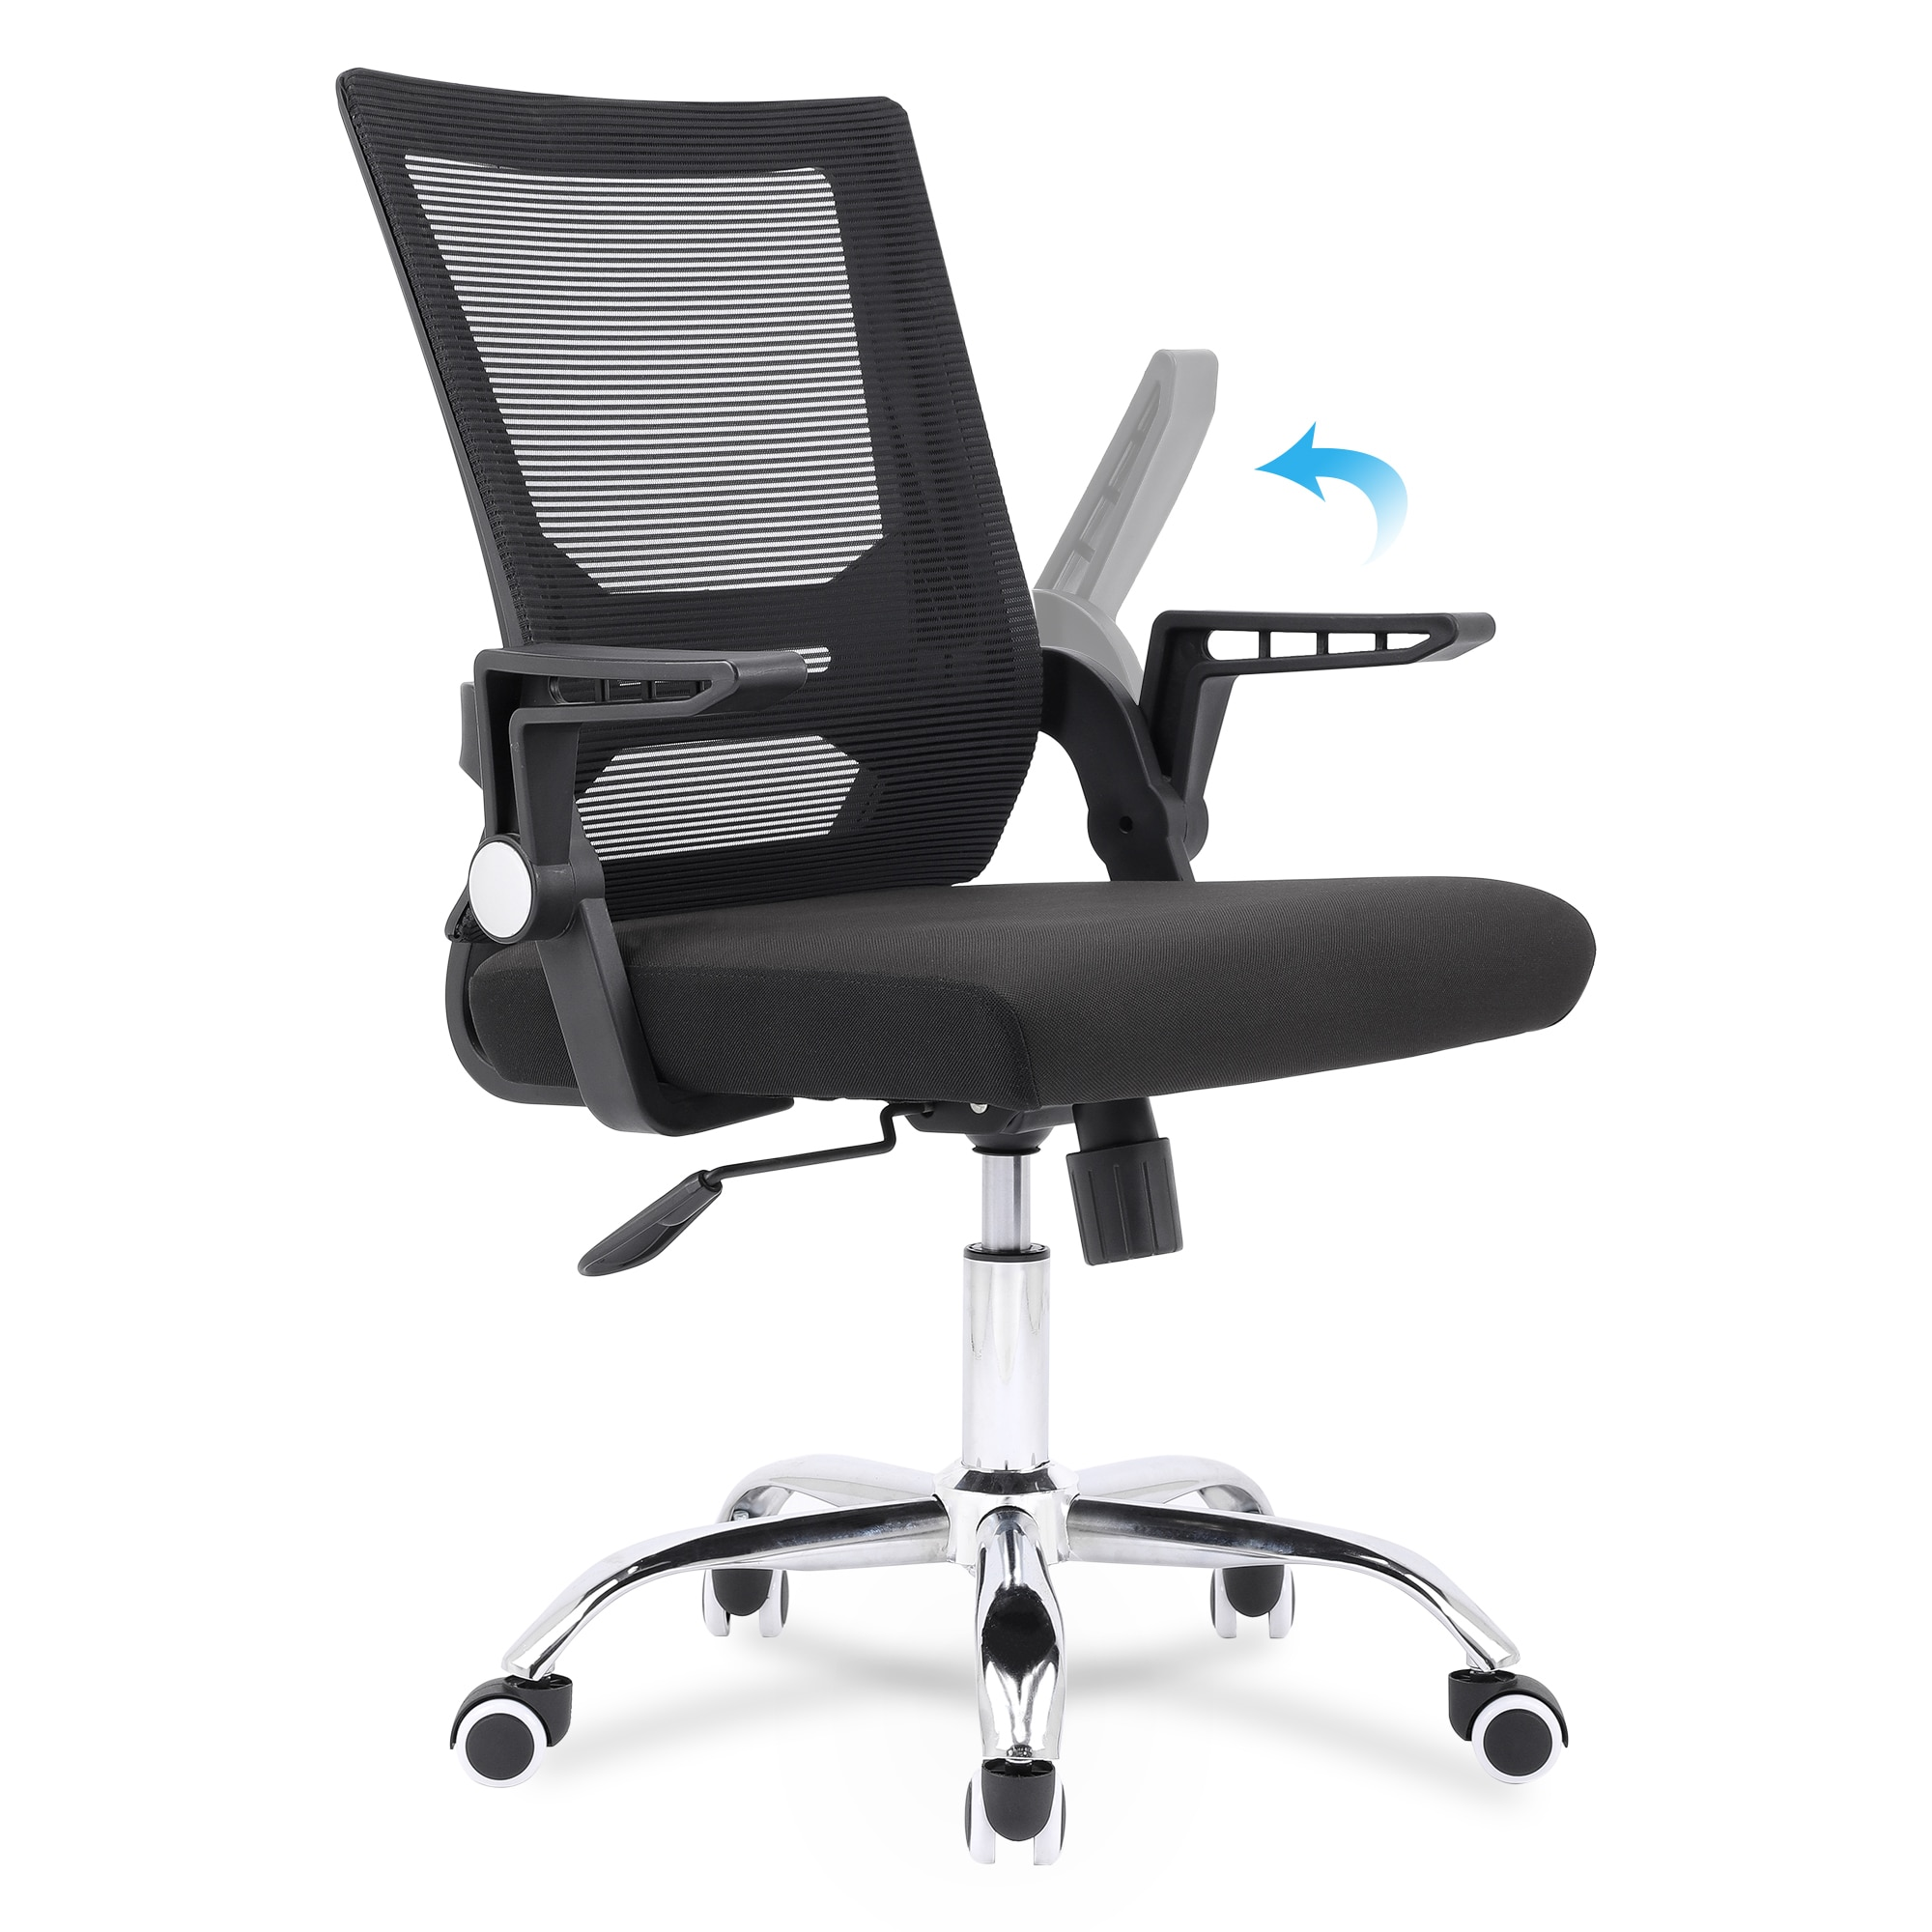 H555ed2bb0bd24f5993e459988a7c51027 - Sigtua Swiveling Desk Chair Breathable Height-adjustable PC Chair Ergonomic Executive Black Computer Office Chair